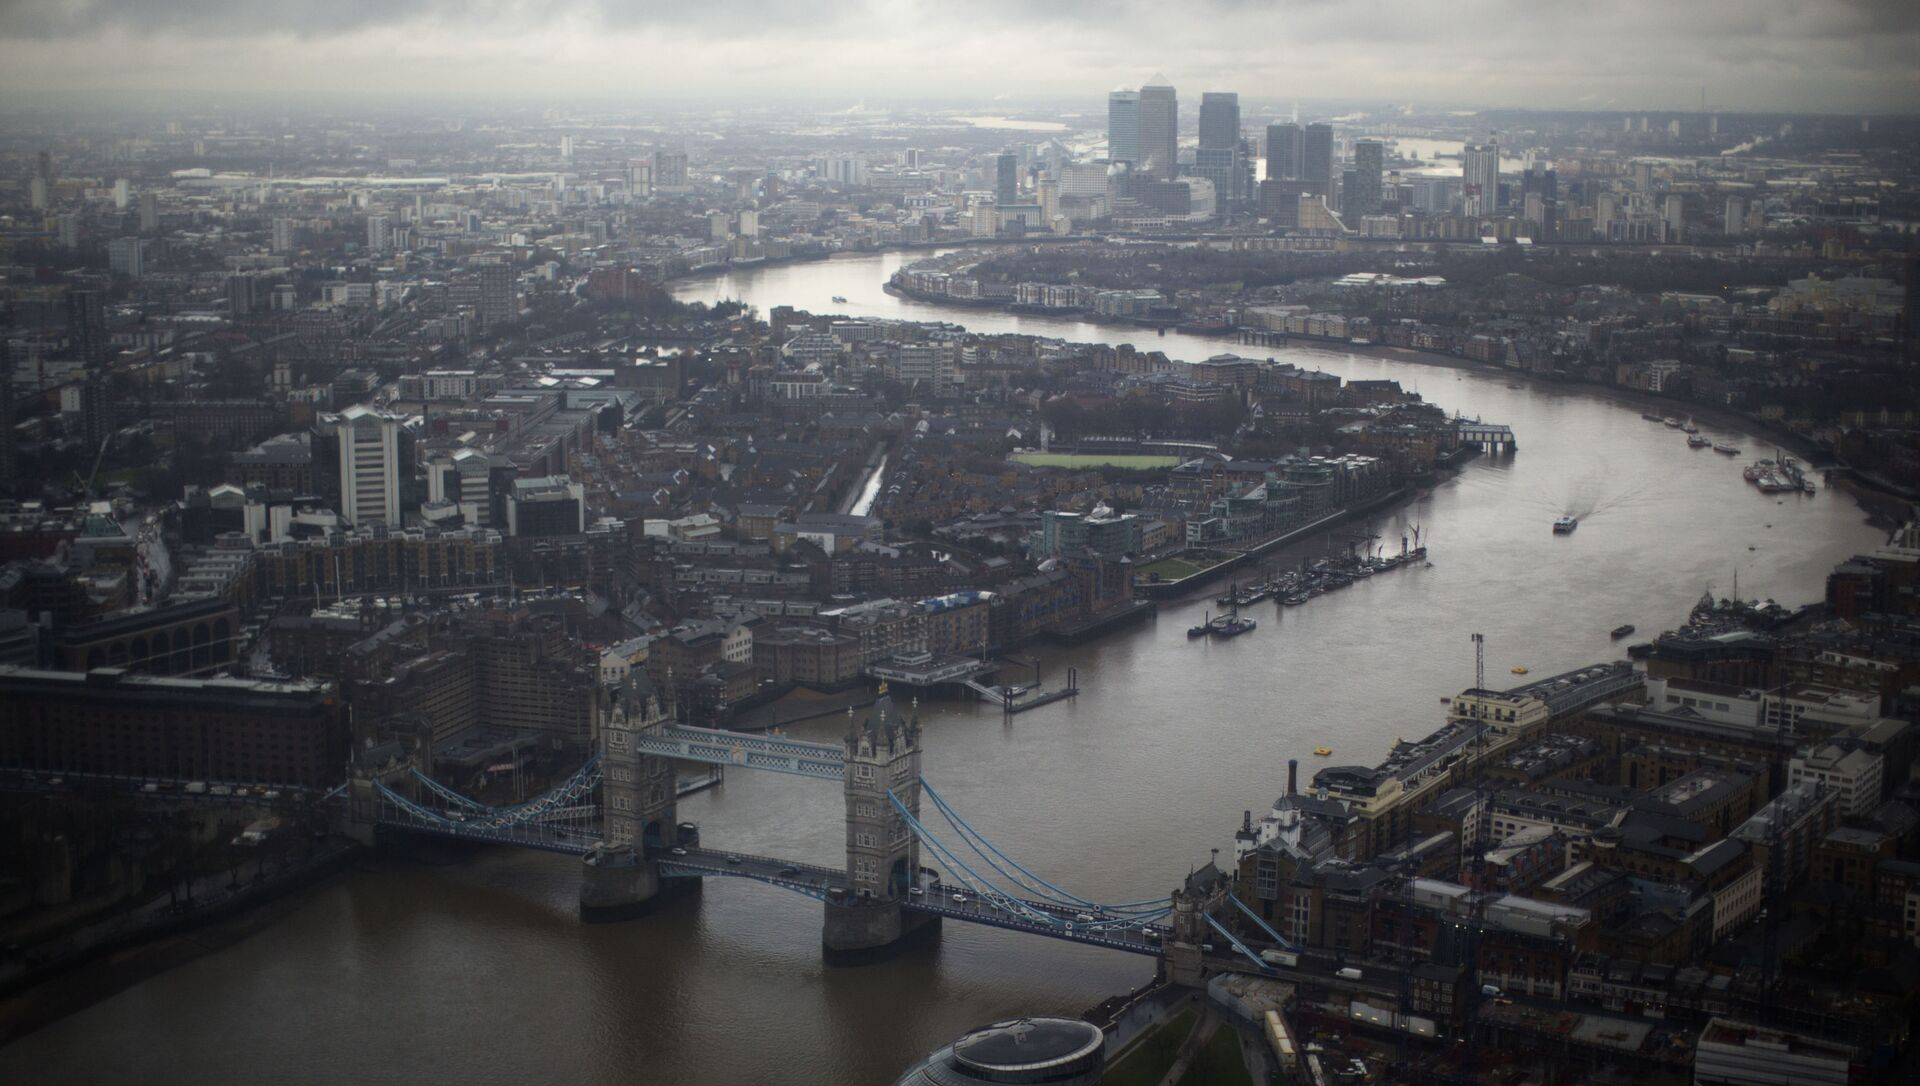 Tower Bridge, centre, and the Canary Wharf business district in the distance as the River Thames flows through London, are seen through a window during the official opening of The View viewing platform at the 95-storey Shard skyscraper in London, Friday, Feb. 1, 2013 - Sputnik International, 1920, 02.04.2021